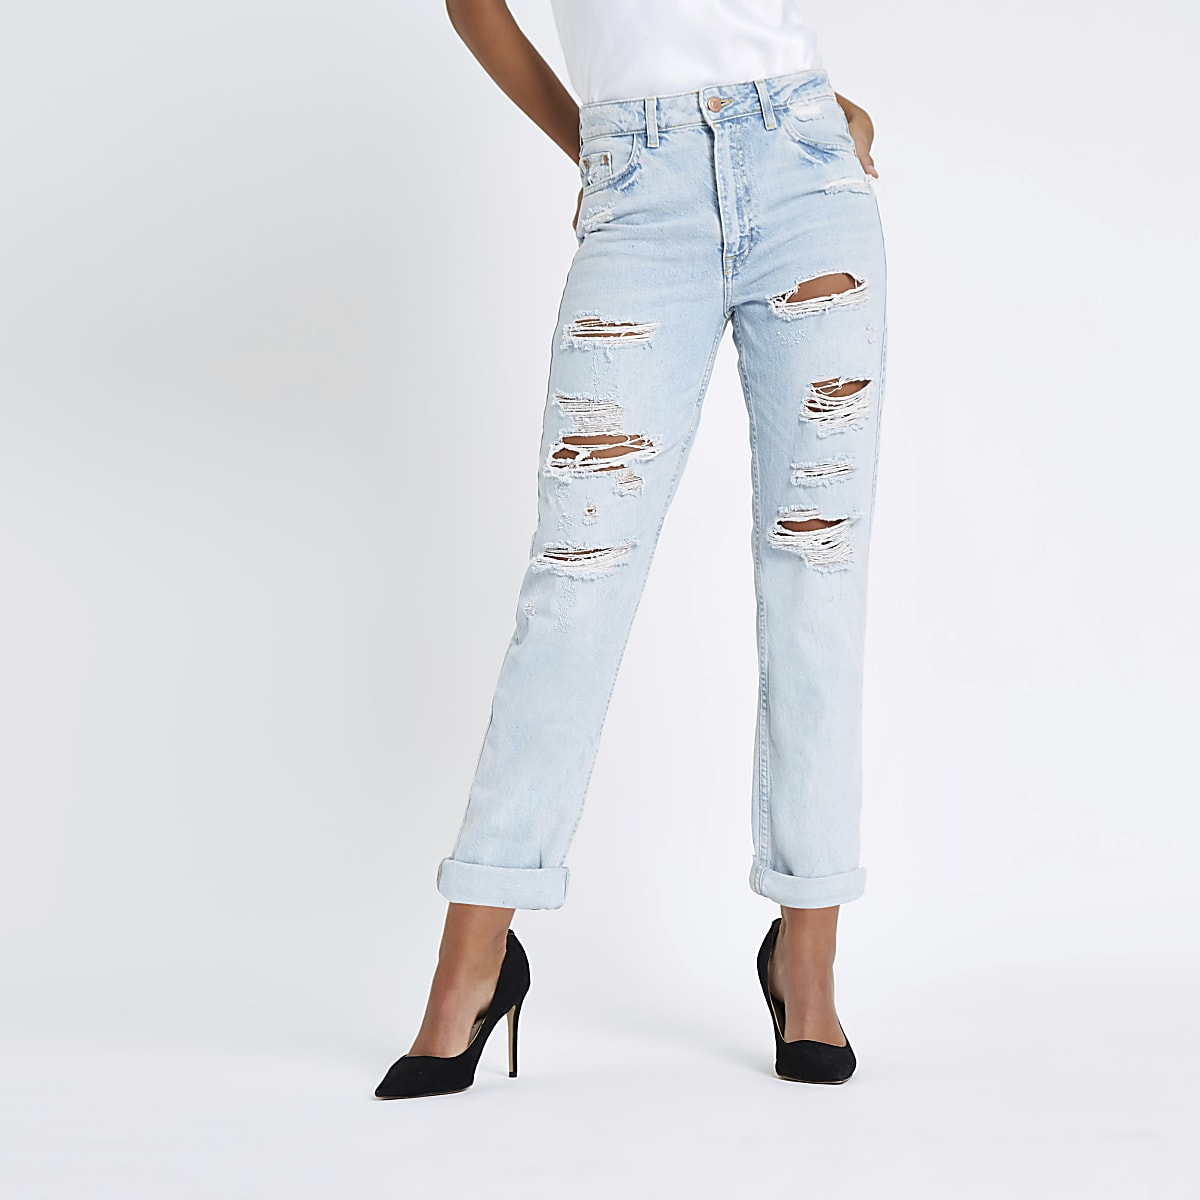 f9ab09e6f12ce5 Lichtblauwe mom ripped jeans Lichtblauwe mom ripped jeans ...